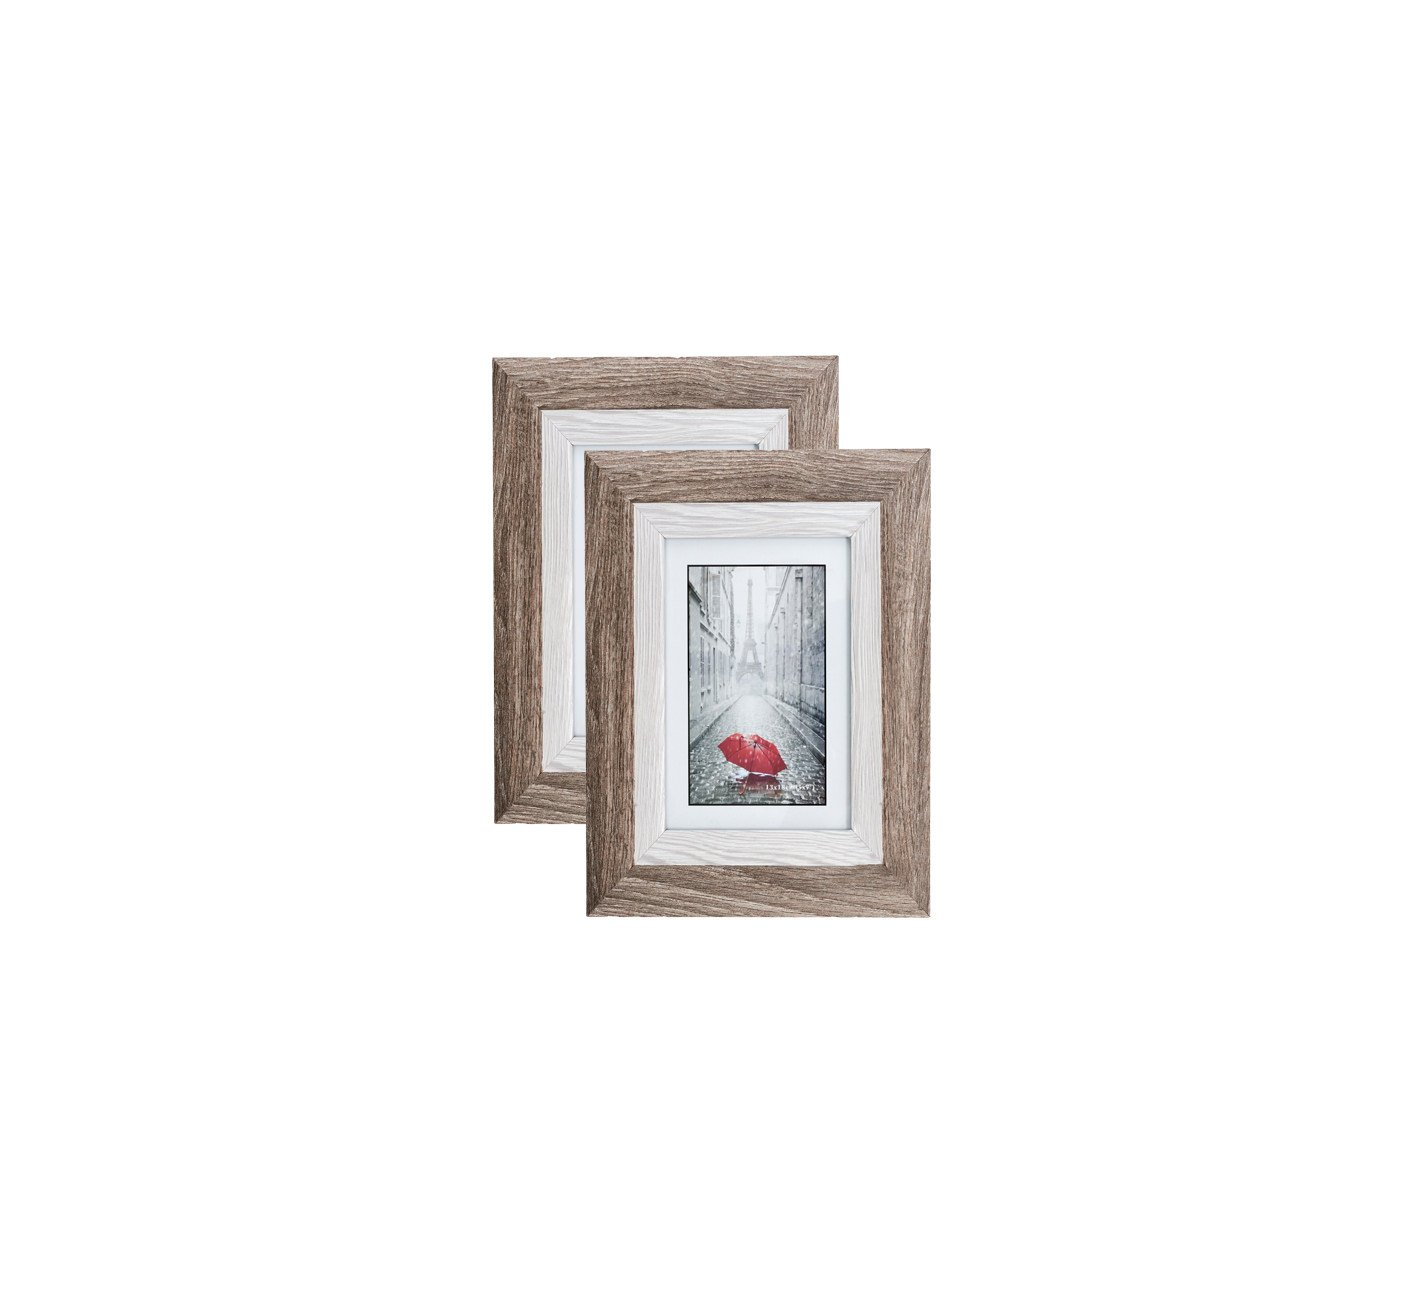 Distressed Brown MDF Wood Picture Frame 4X6 (2 pc) Display with Photo Glass Front, Easel Back, and Wall Hang Clip   2 PIECE SET